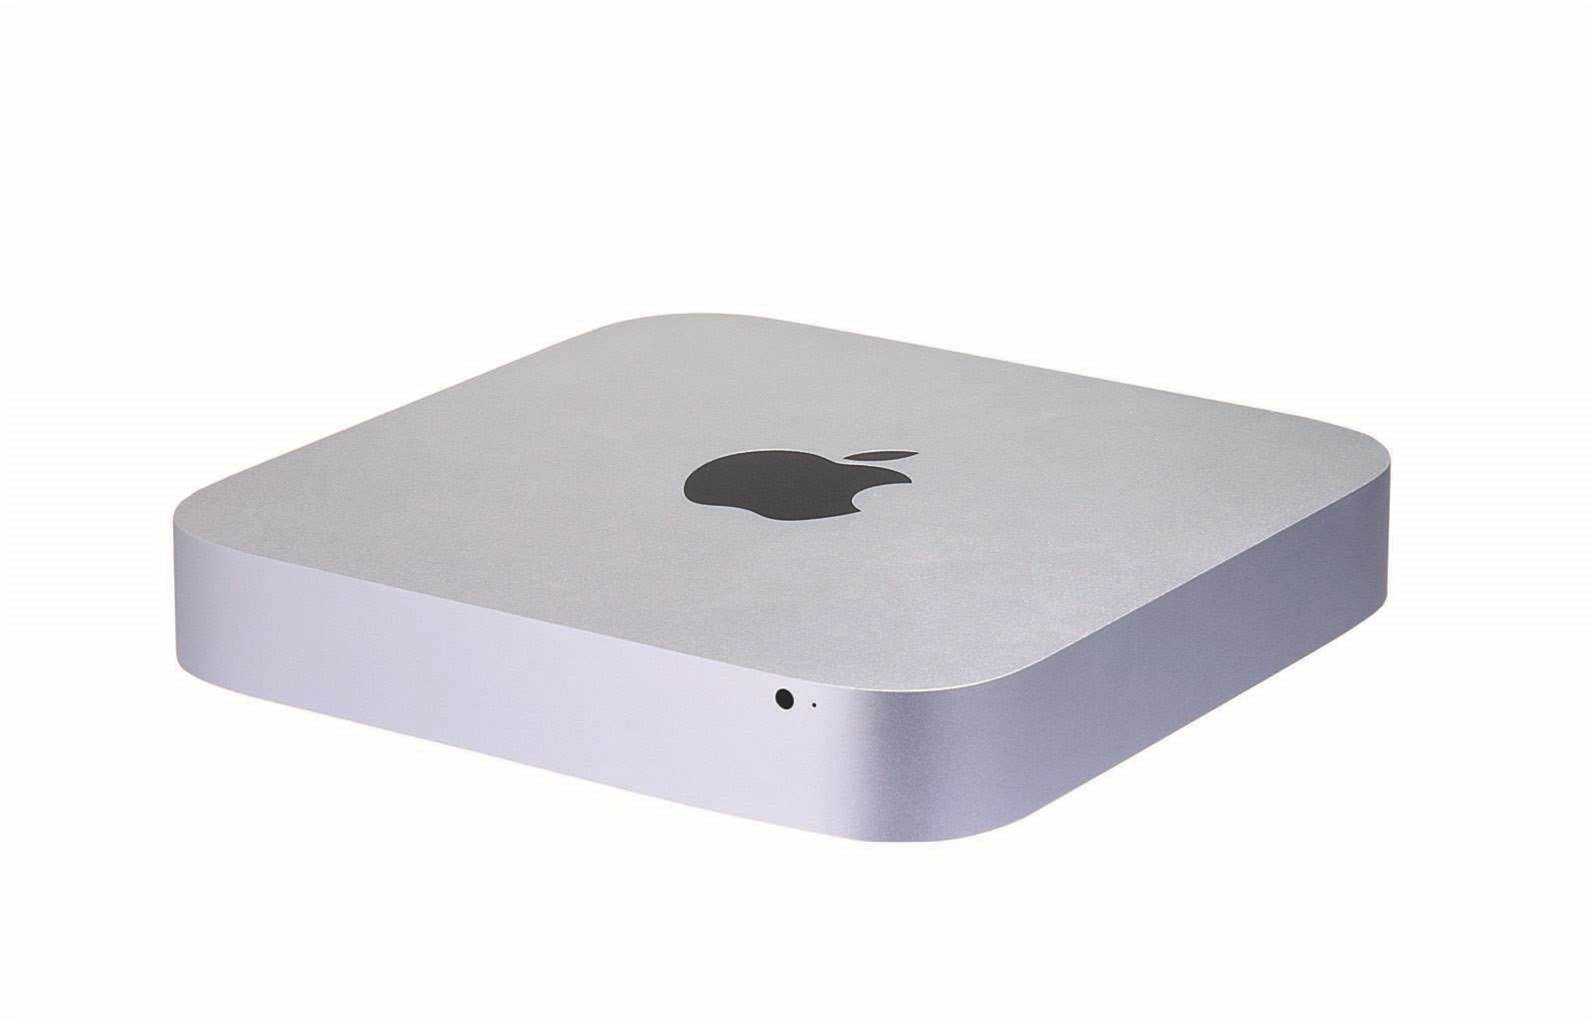 Review: Apple Mac mini